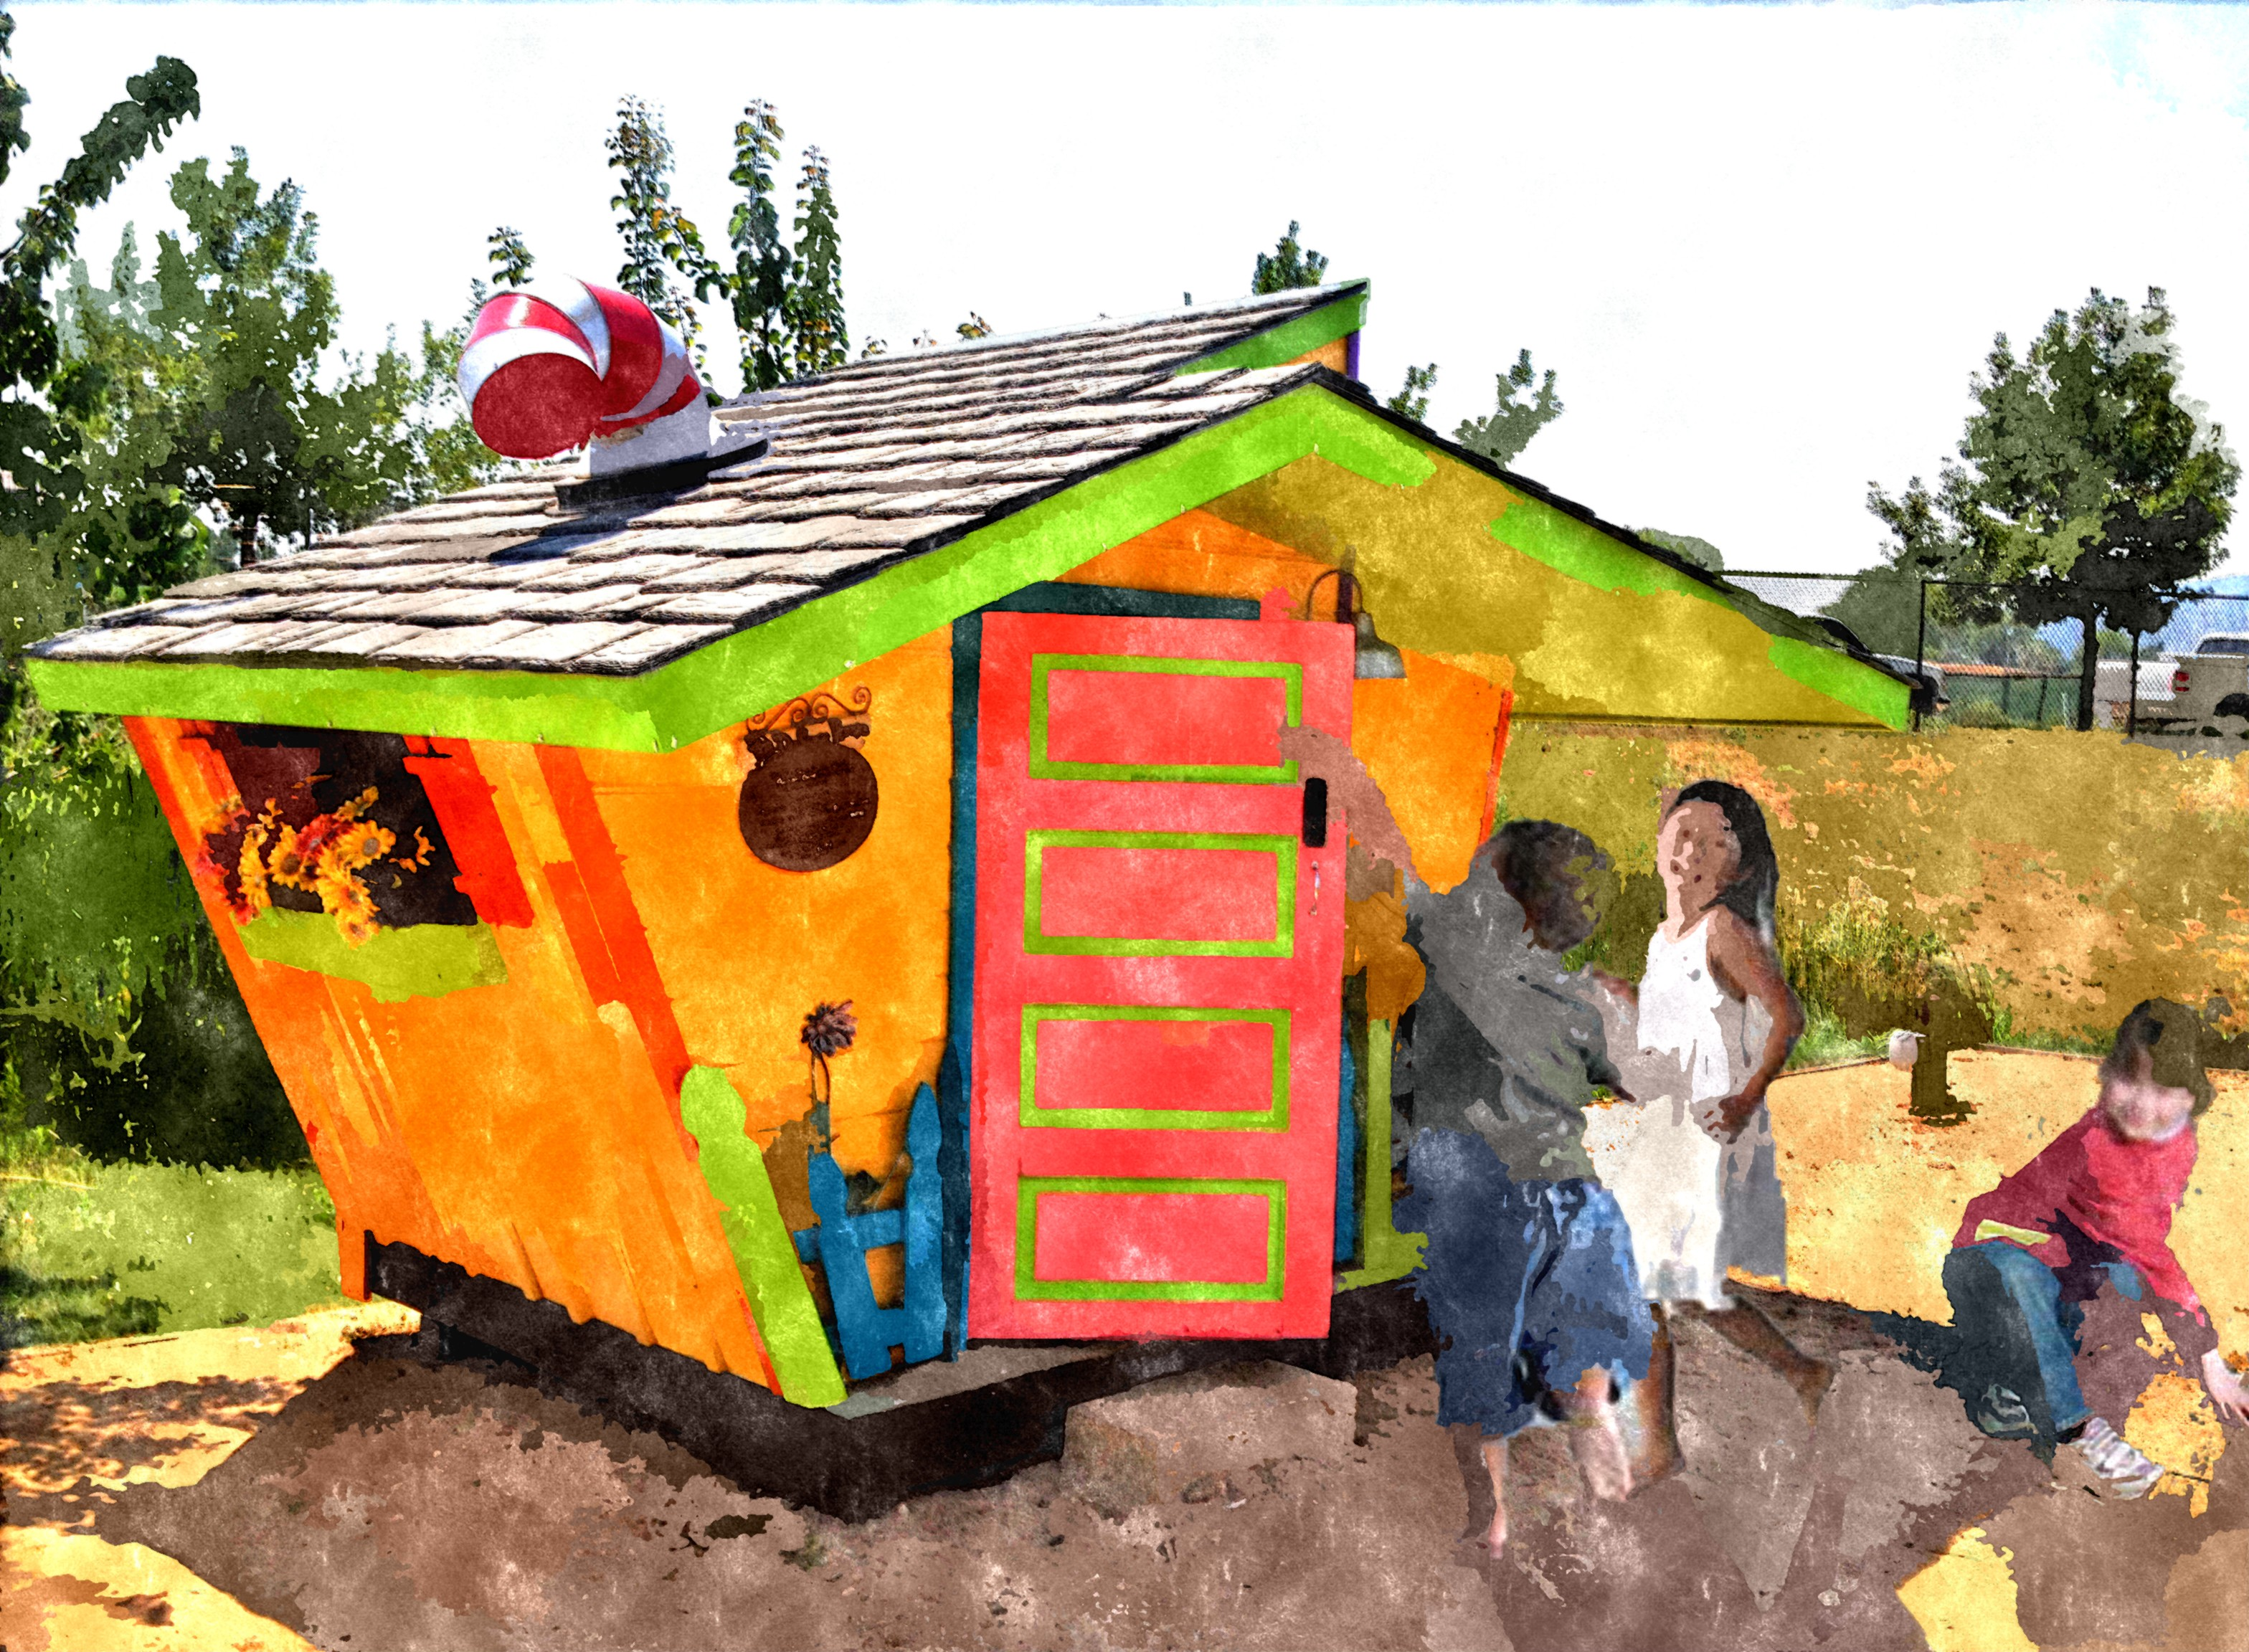 Outdoor playhouse example